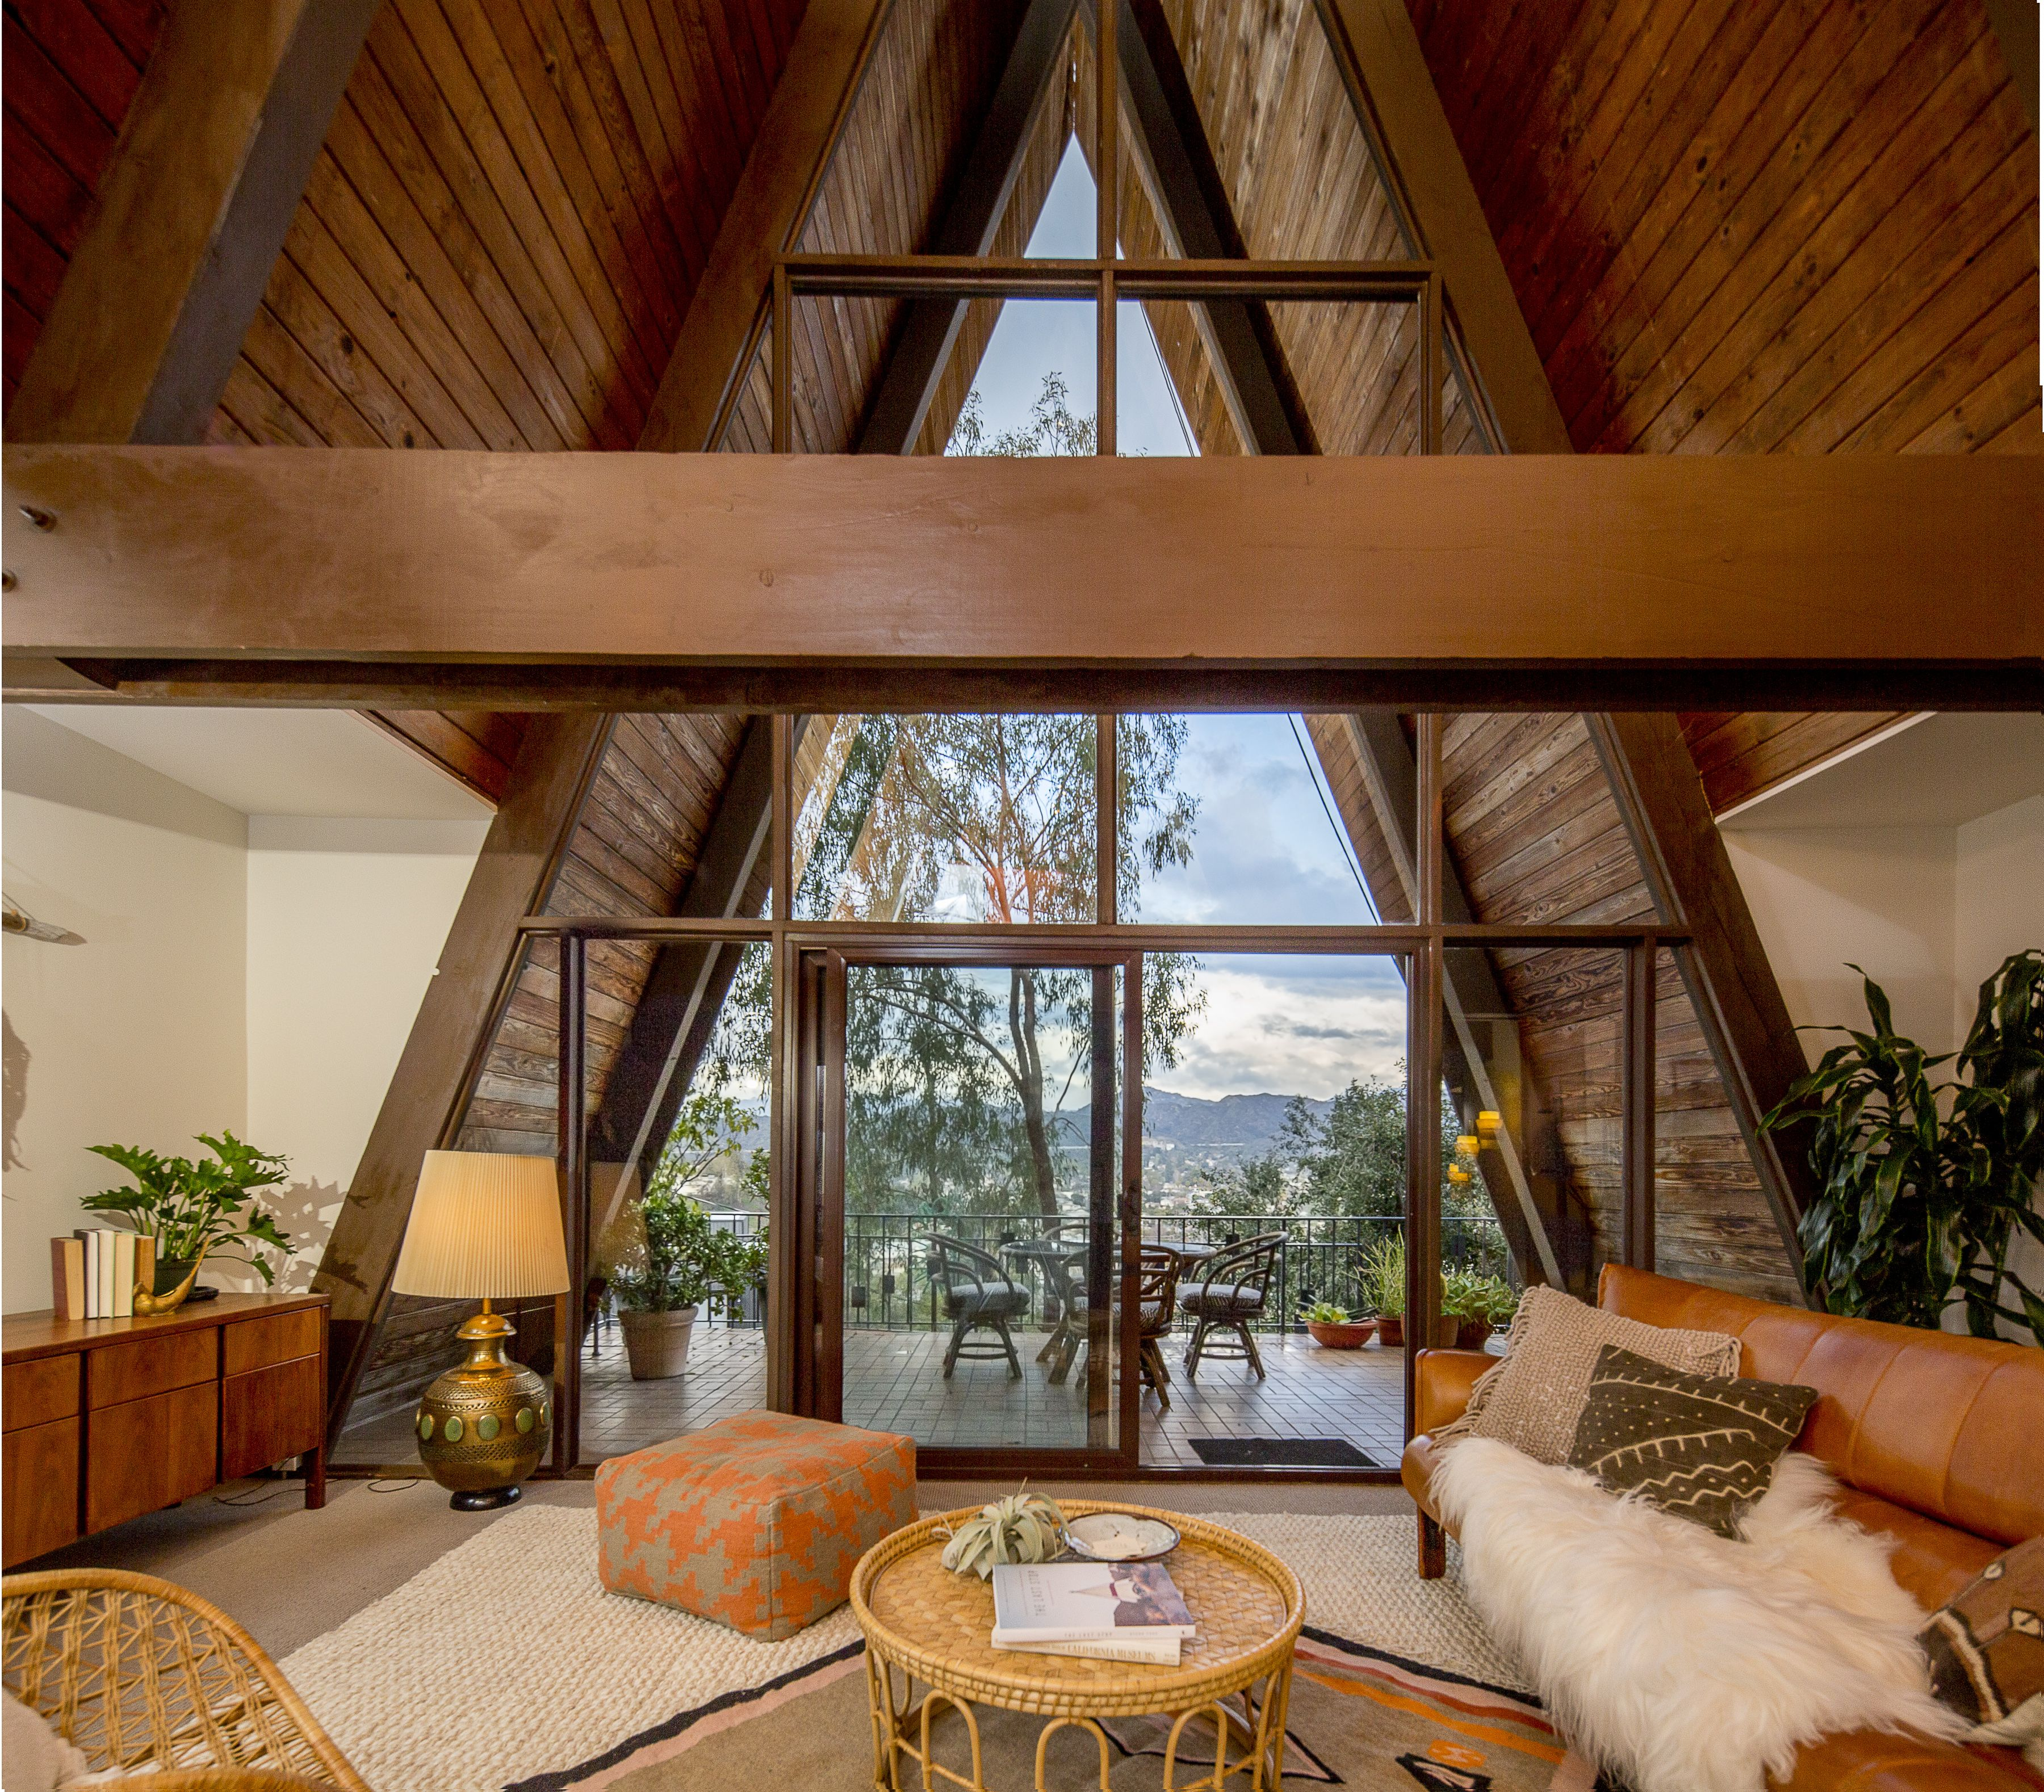 Architecturally Intriguing A Frame In Eagle Rock House And Home